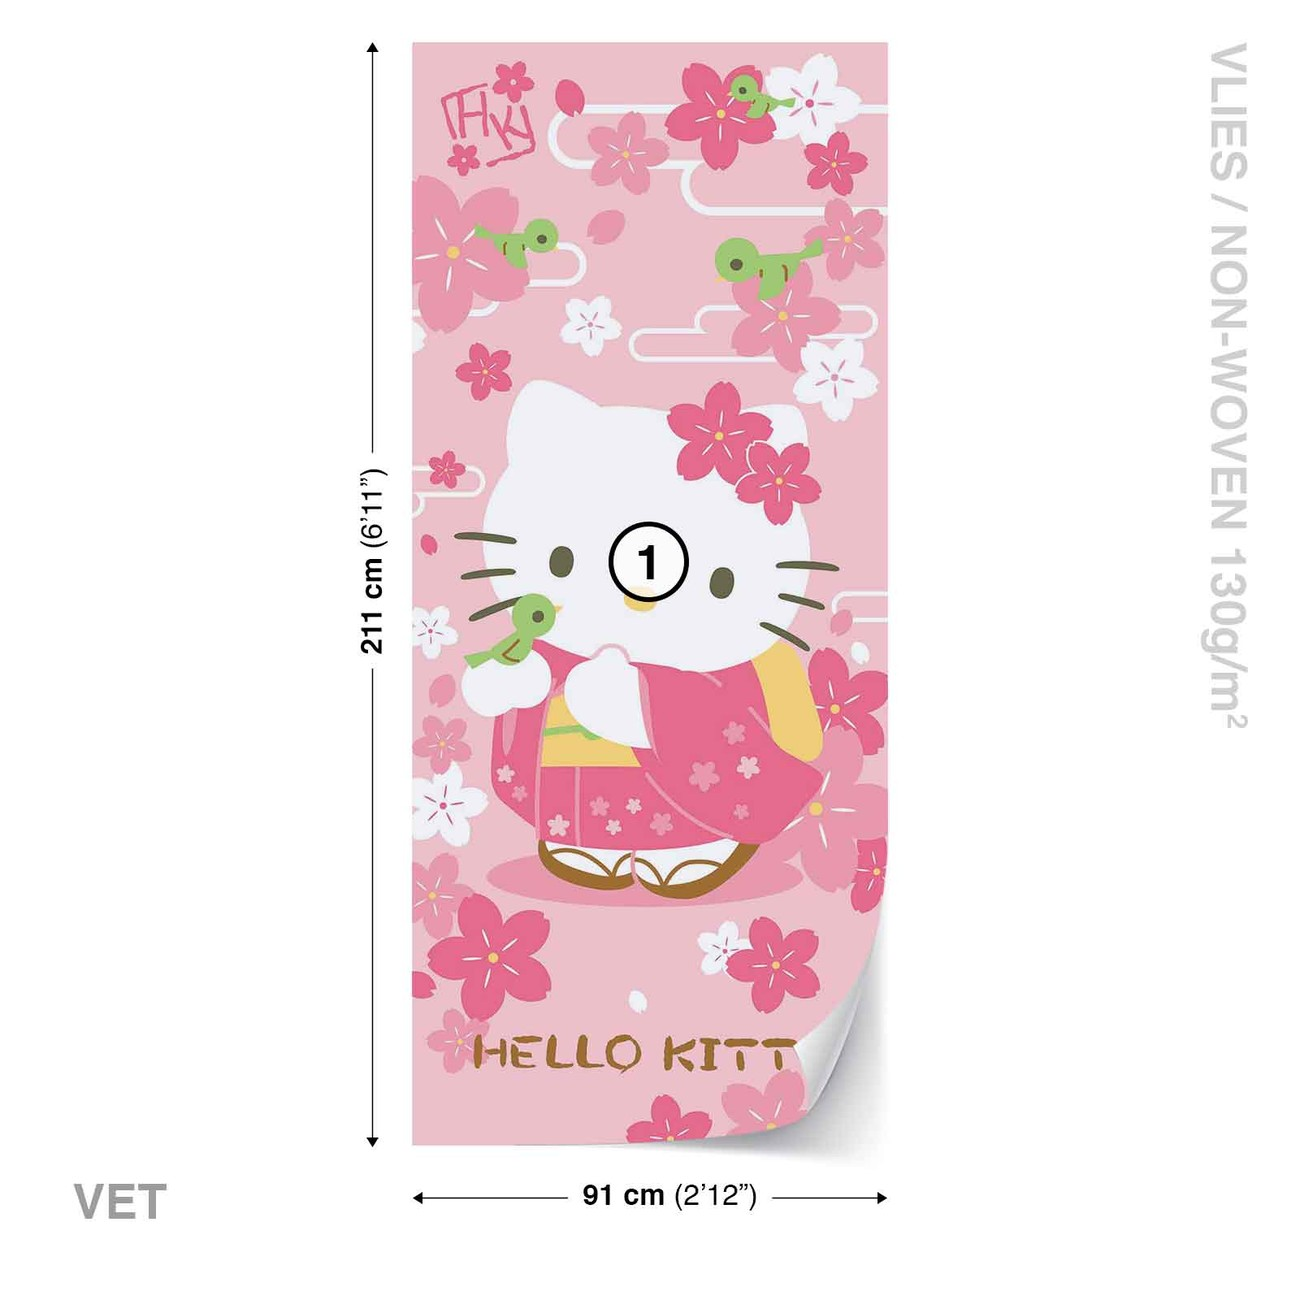 hello kitty wall mural for your home buy at europosters hello kitty wall paper mural buy at abposters com